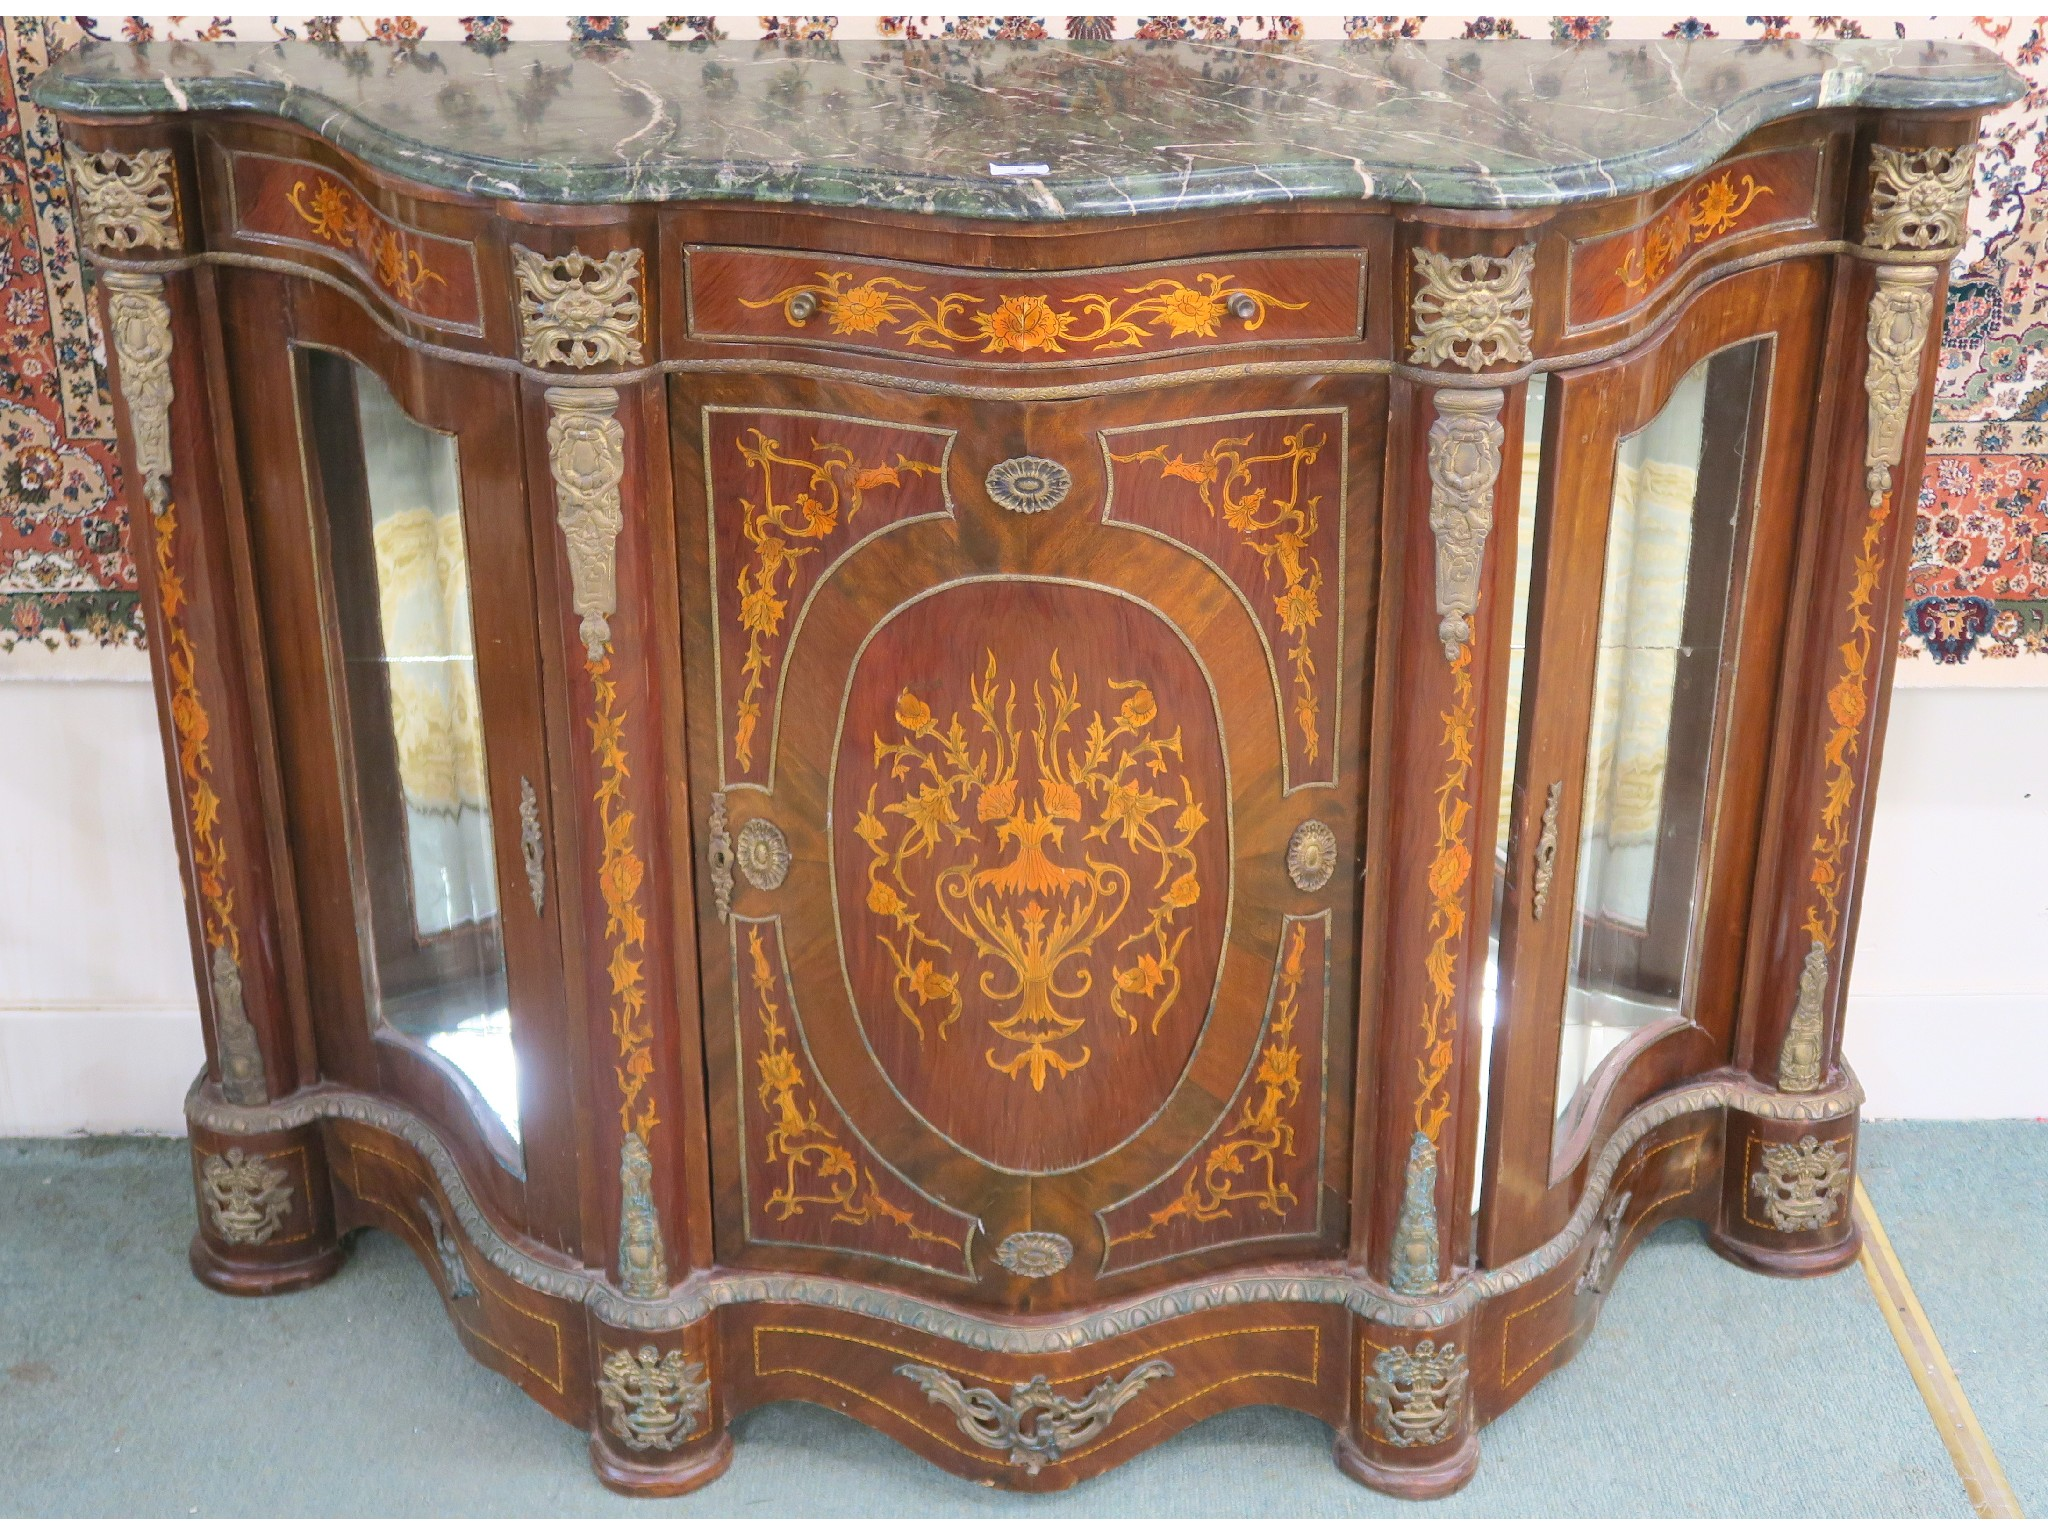 Furniture & Interiors Sale on WEDNESDAY 27th January 2021